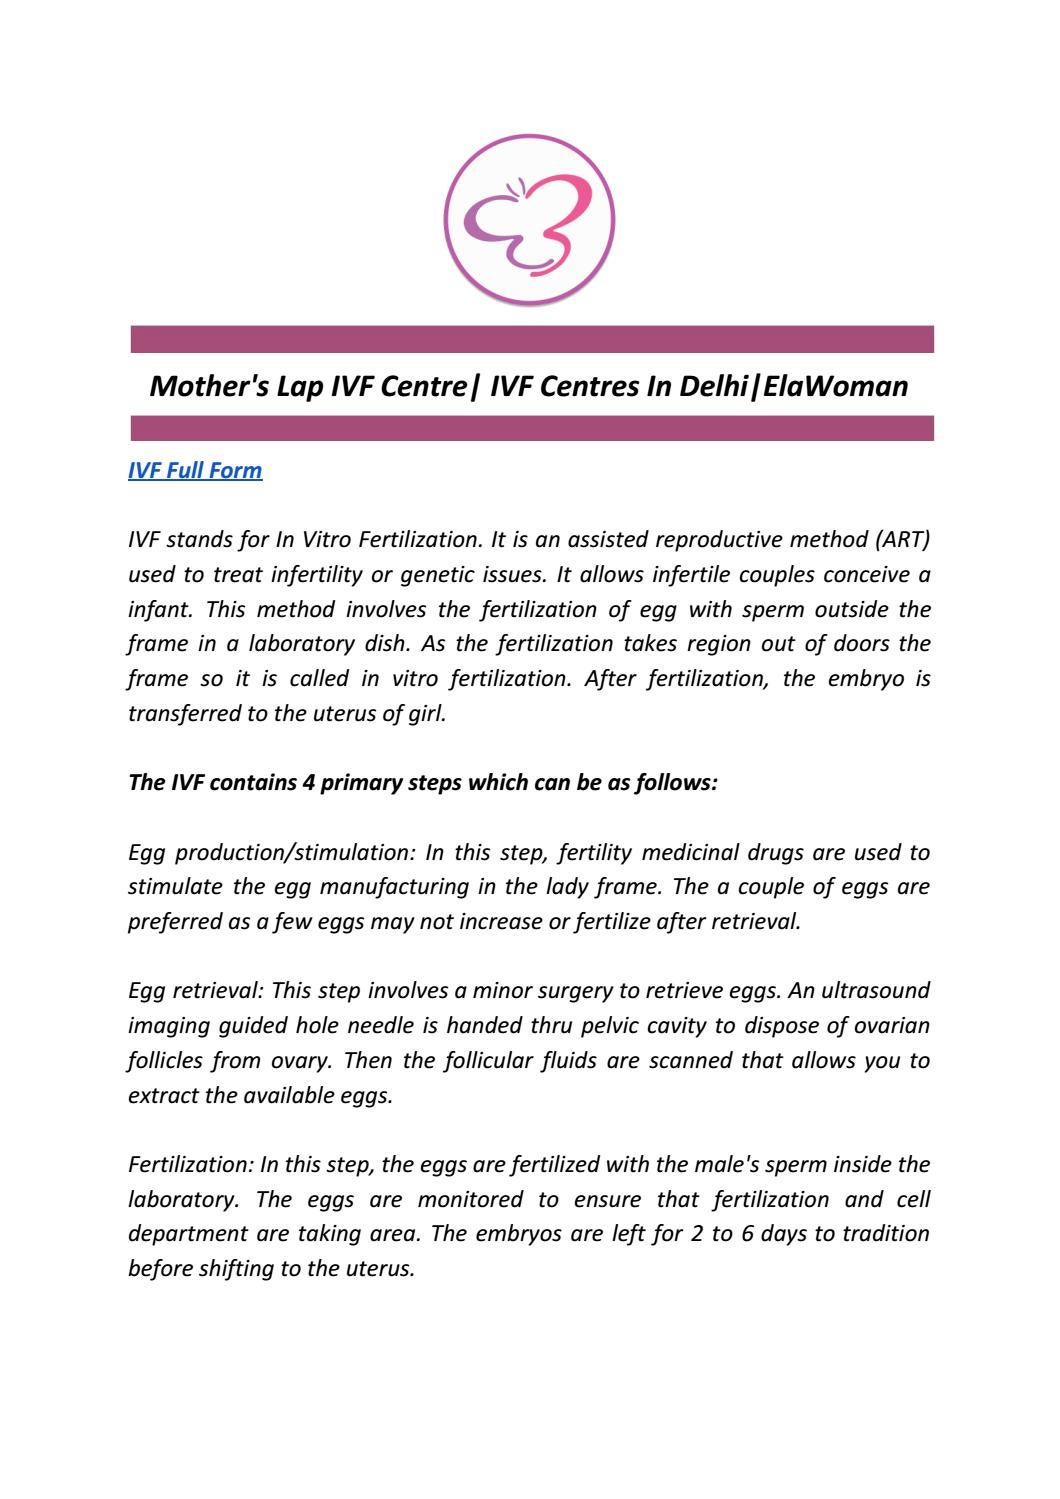 Mother's Lap IVF Centre| IVF Centres In Delhi|ElaWoman by